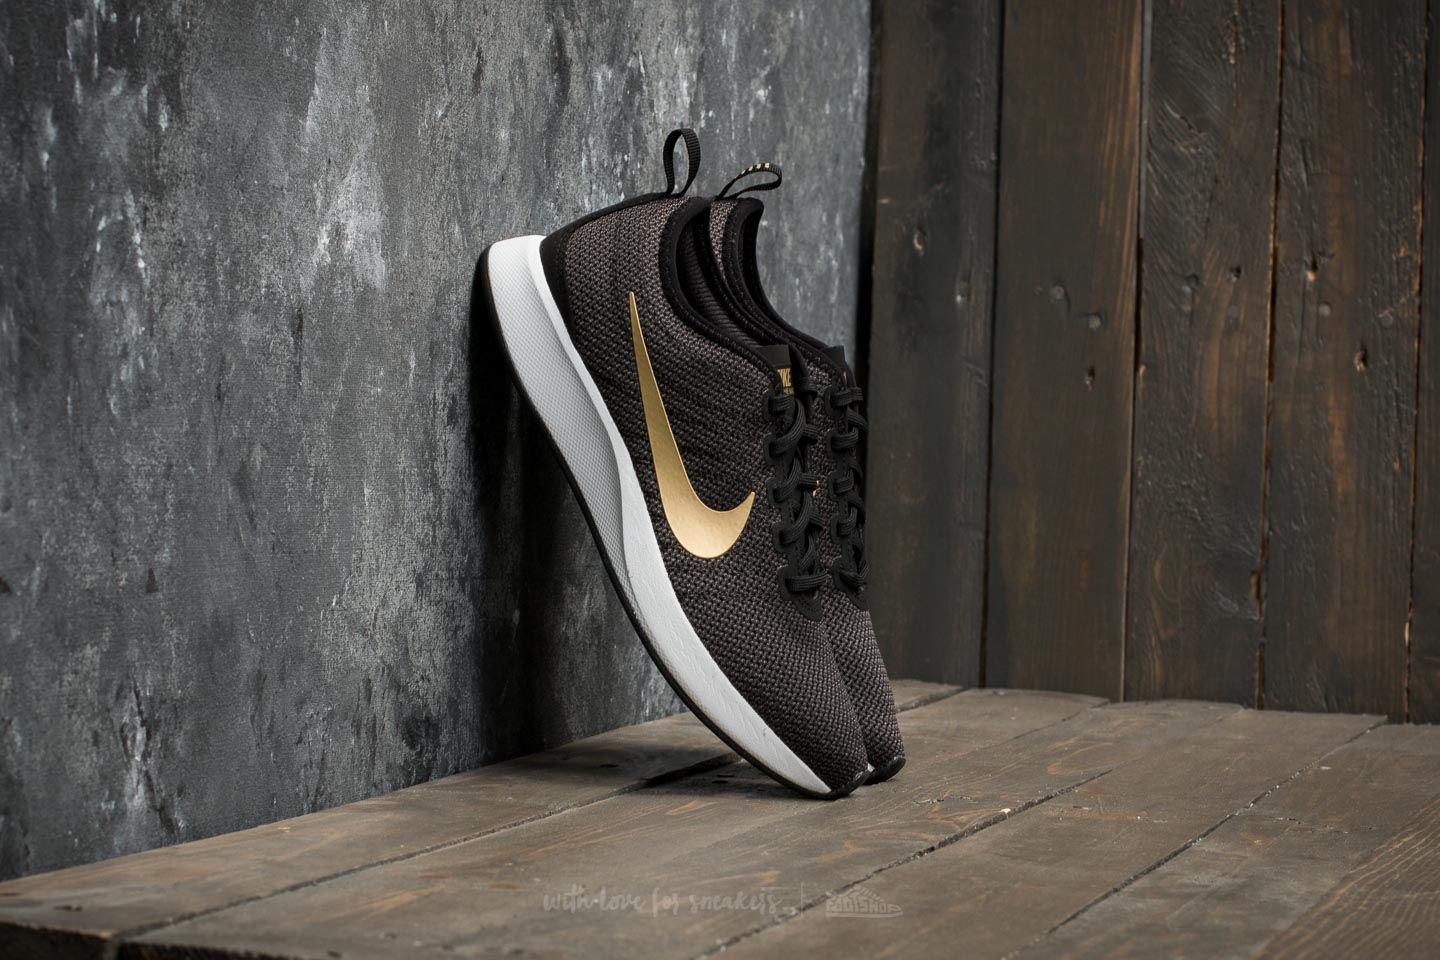 Nike W Dualtone Racer SE Black/ Metallic Gold-Dark Grey